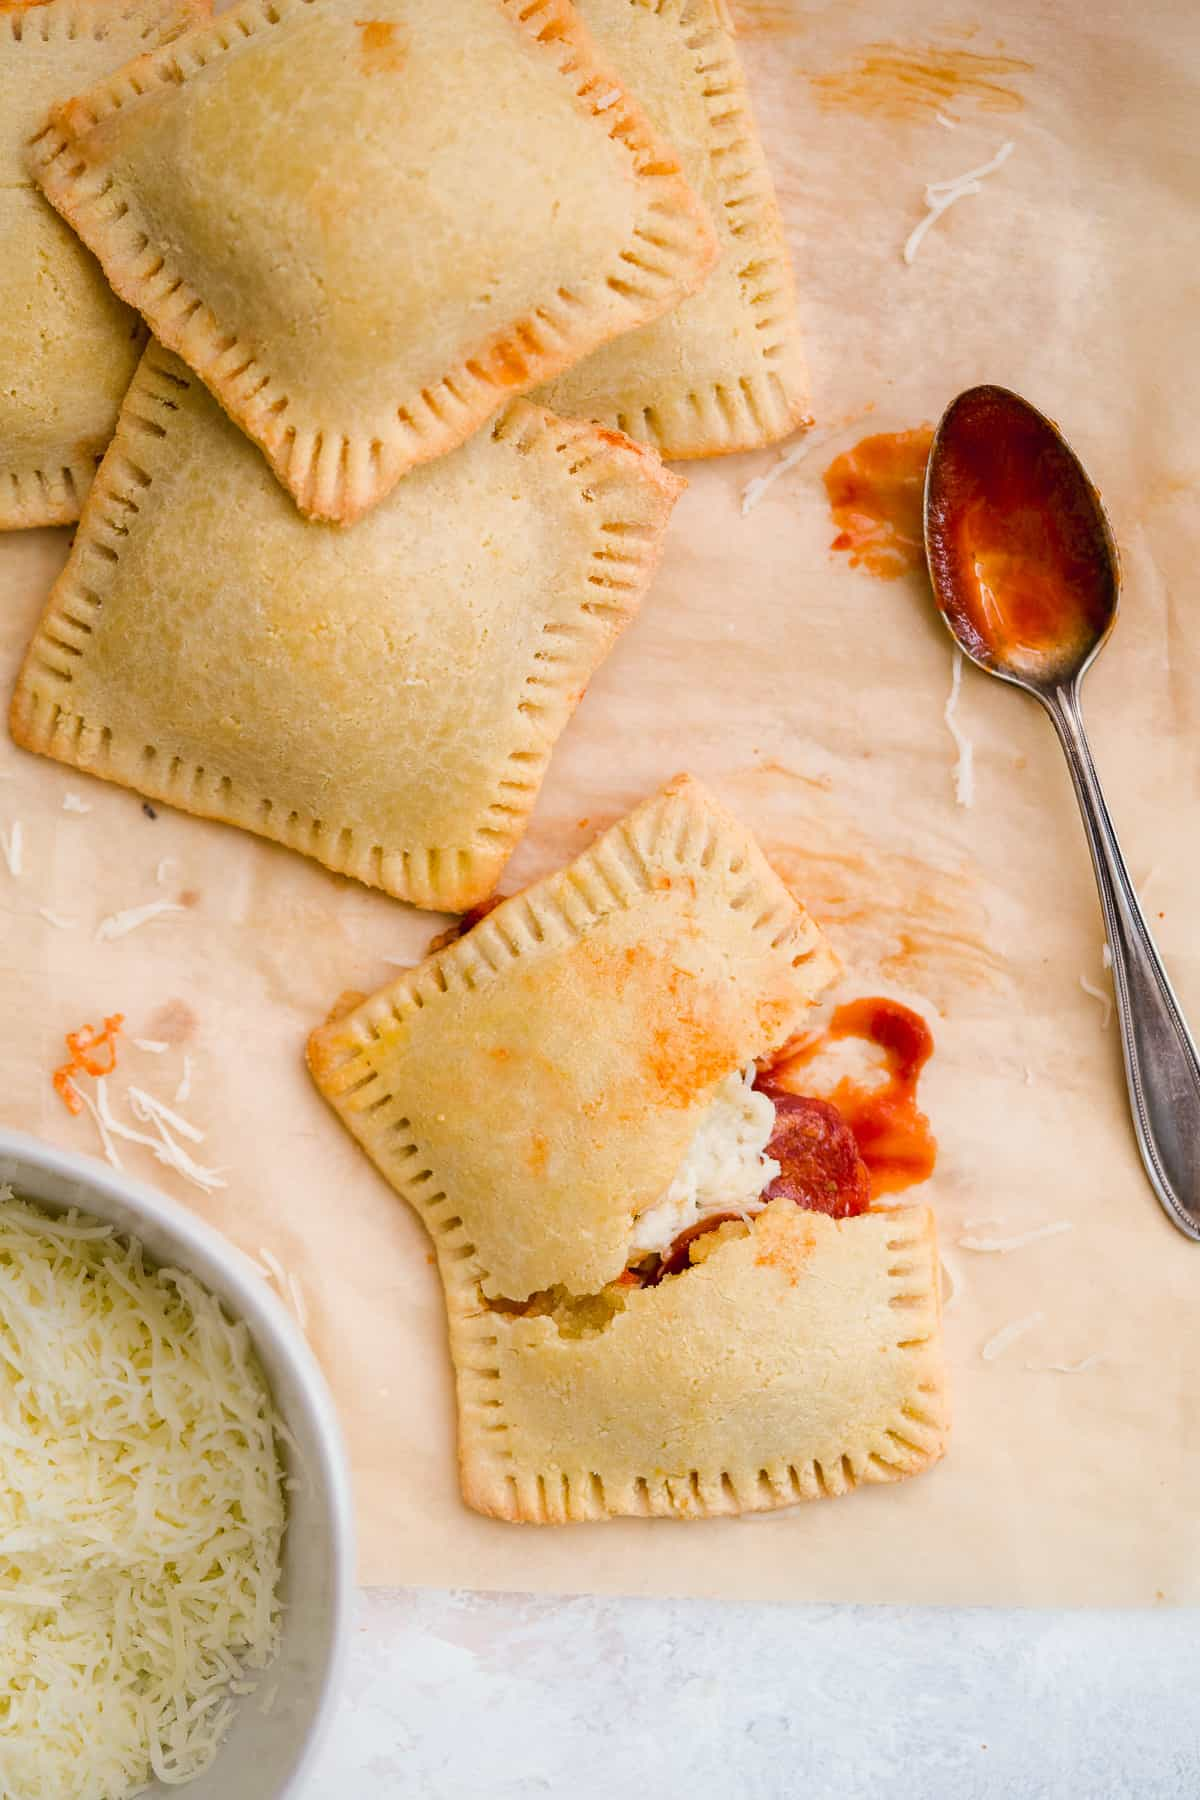 Four yummy pizza hot pockets scattered on brown parchment paper with a bowl of shredded parmesan cheese. One hot pocket is cut in half to reveal delicious insides. Silver spoon with marinara sauce in resting nearby.